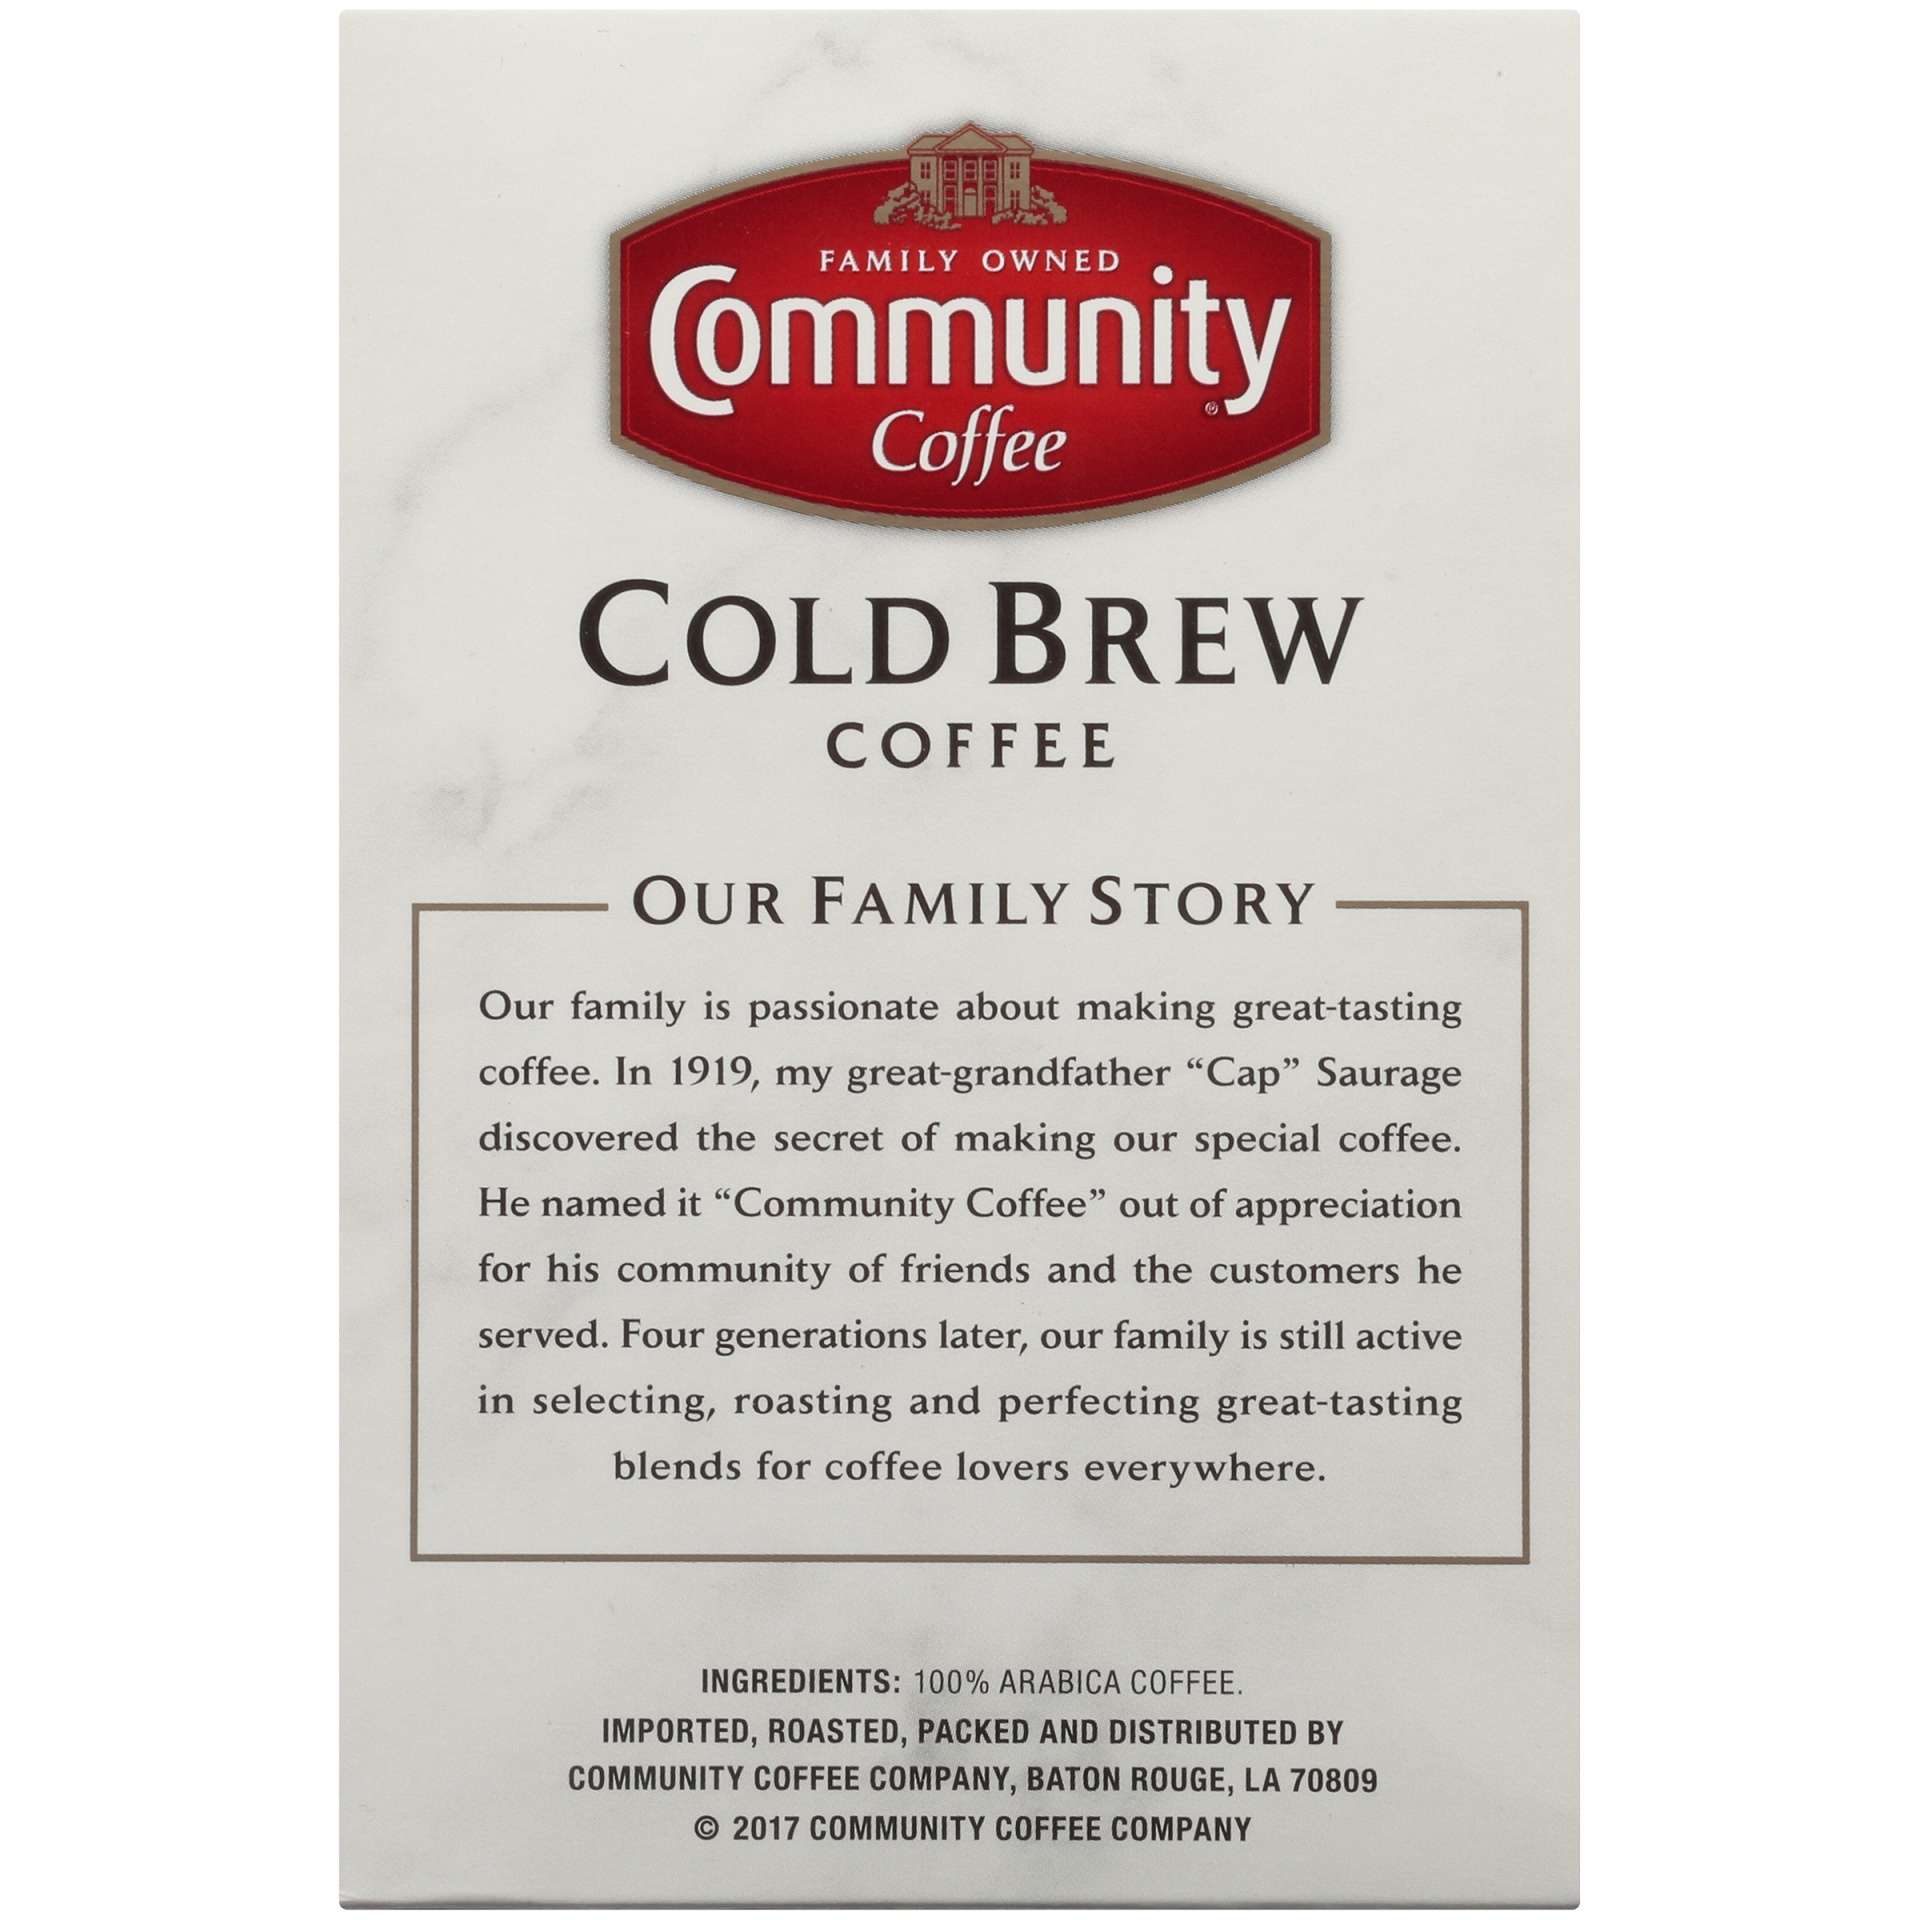 slide 5 of 7, Community Coffee Cold Brew Coffee 8 Oz. Box,